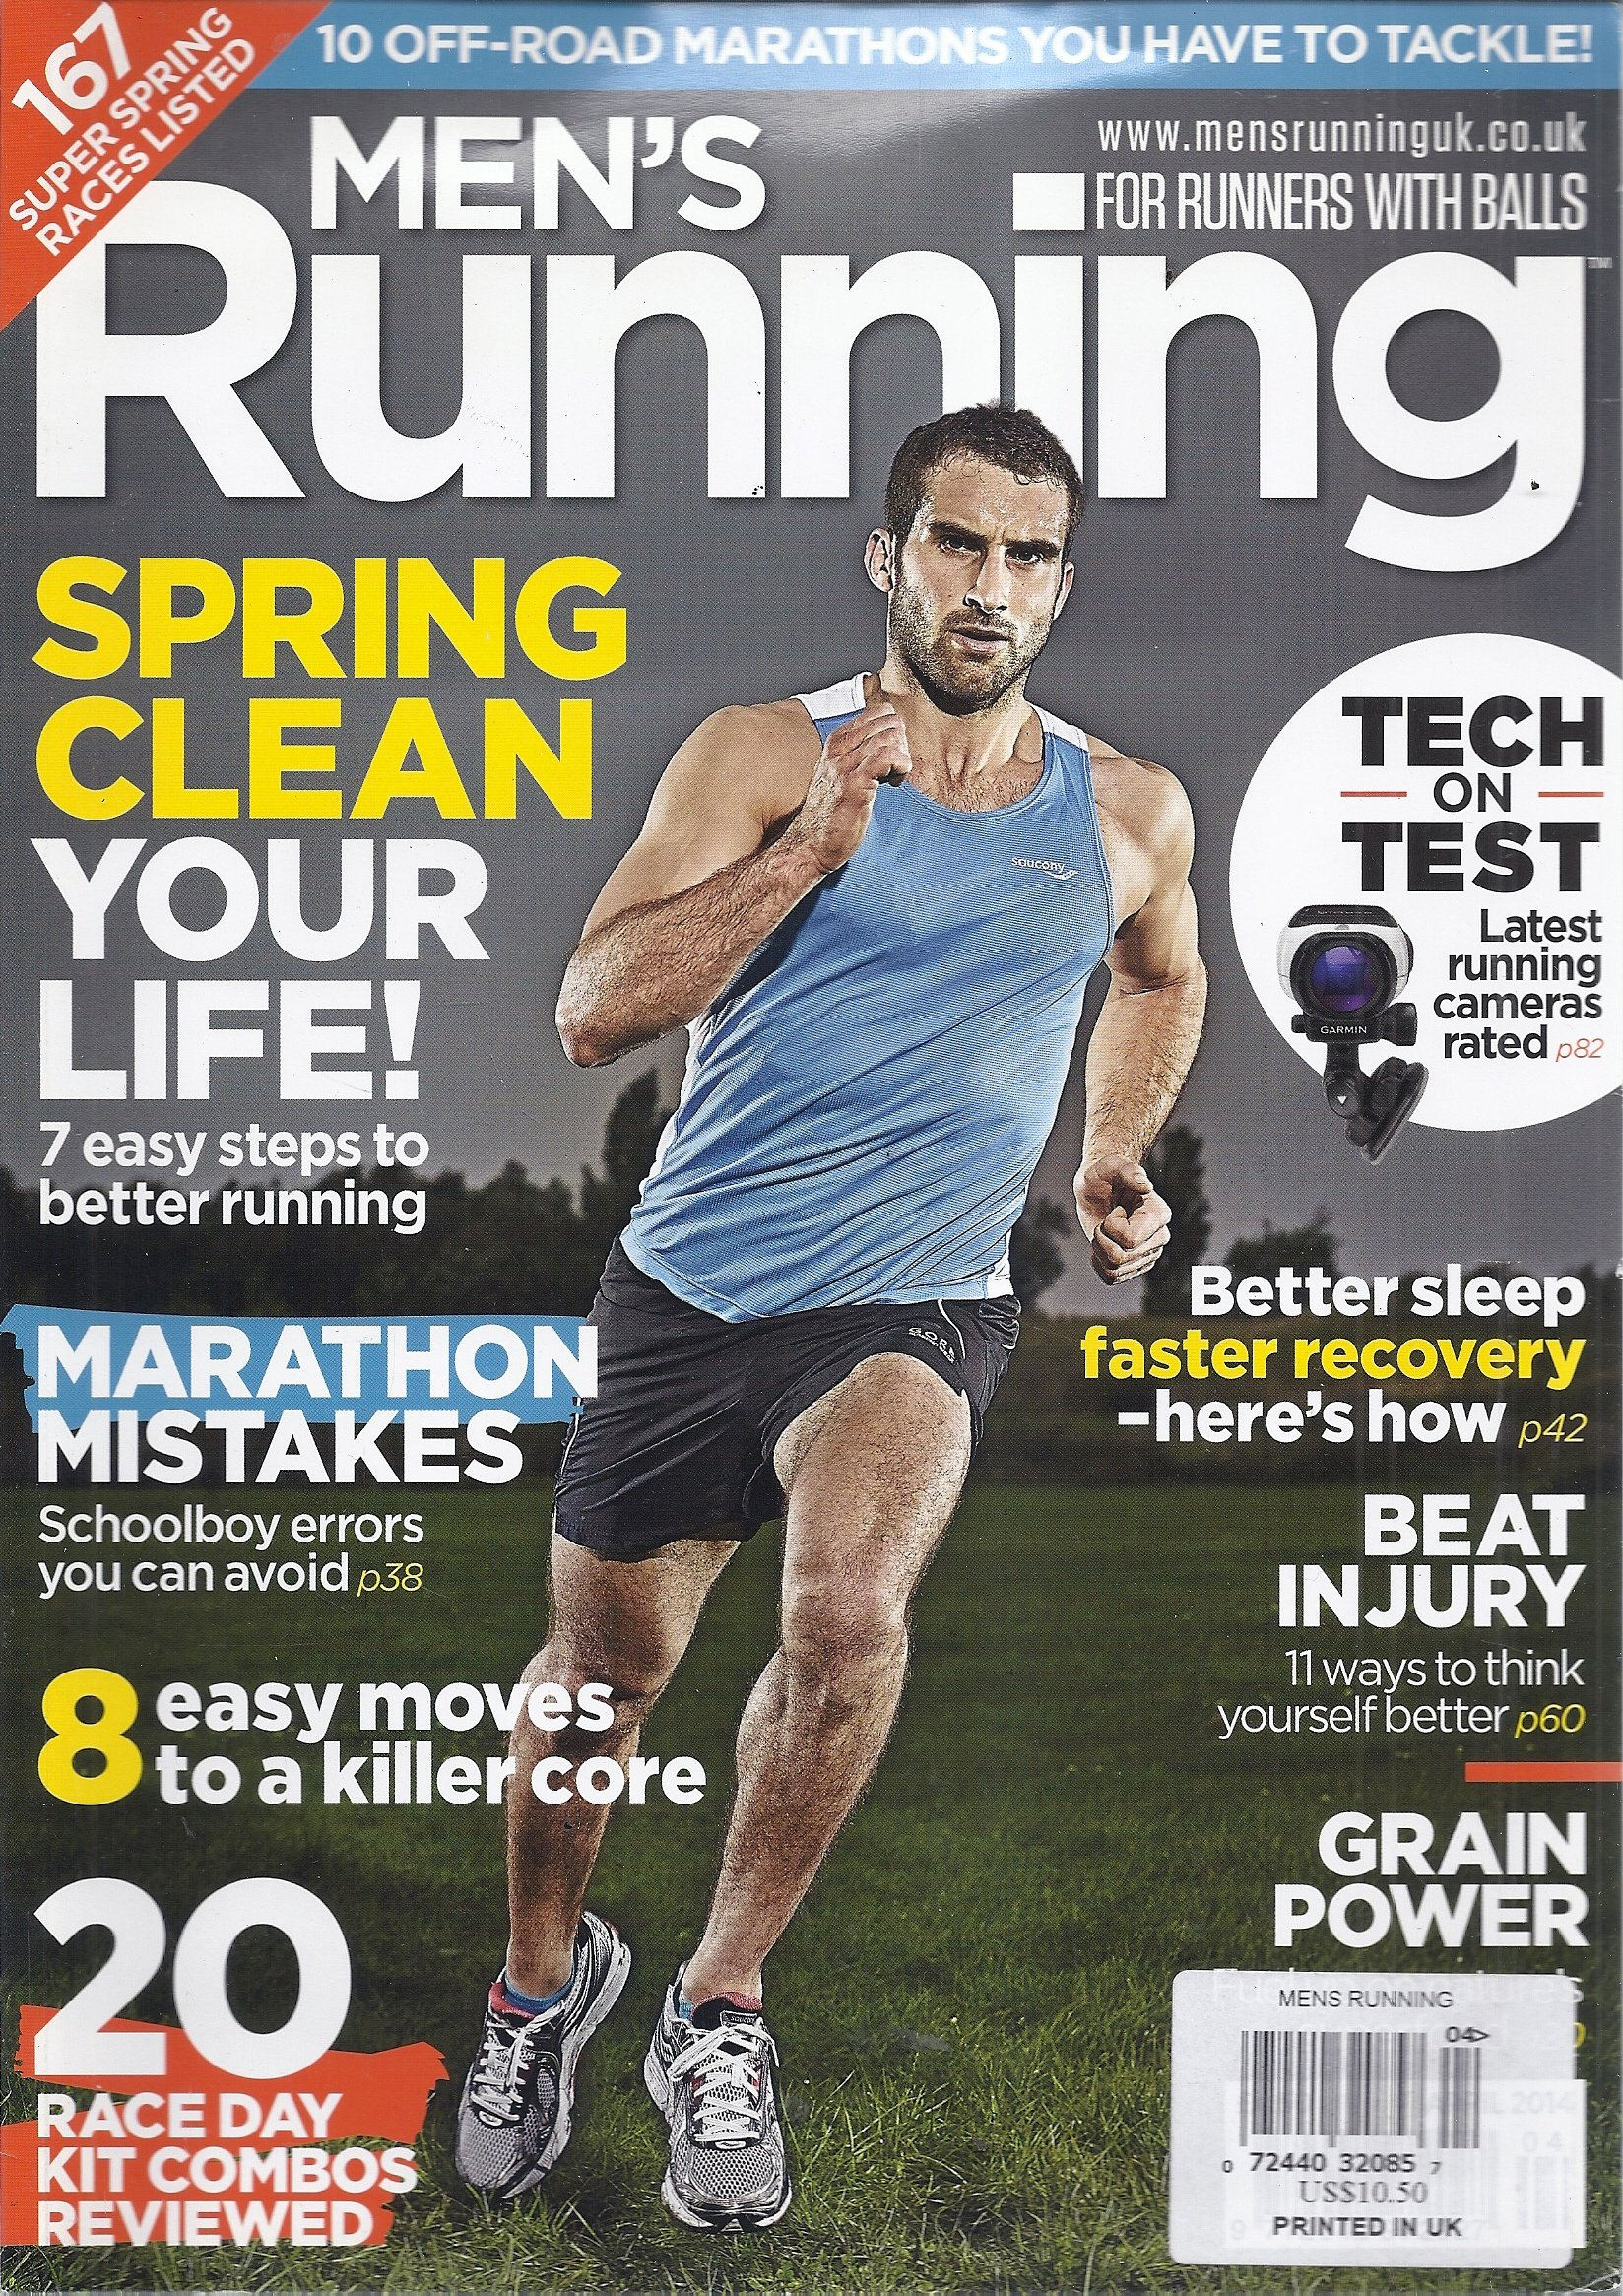 Men's Running Magazine (April 2014 - For Runners With Balls) pdf